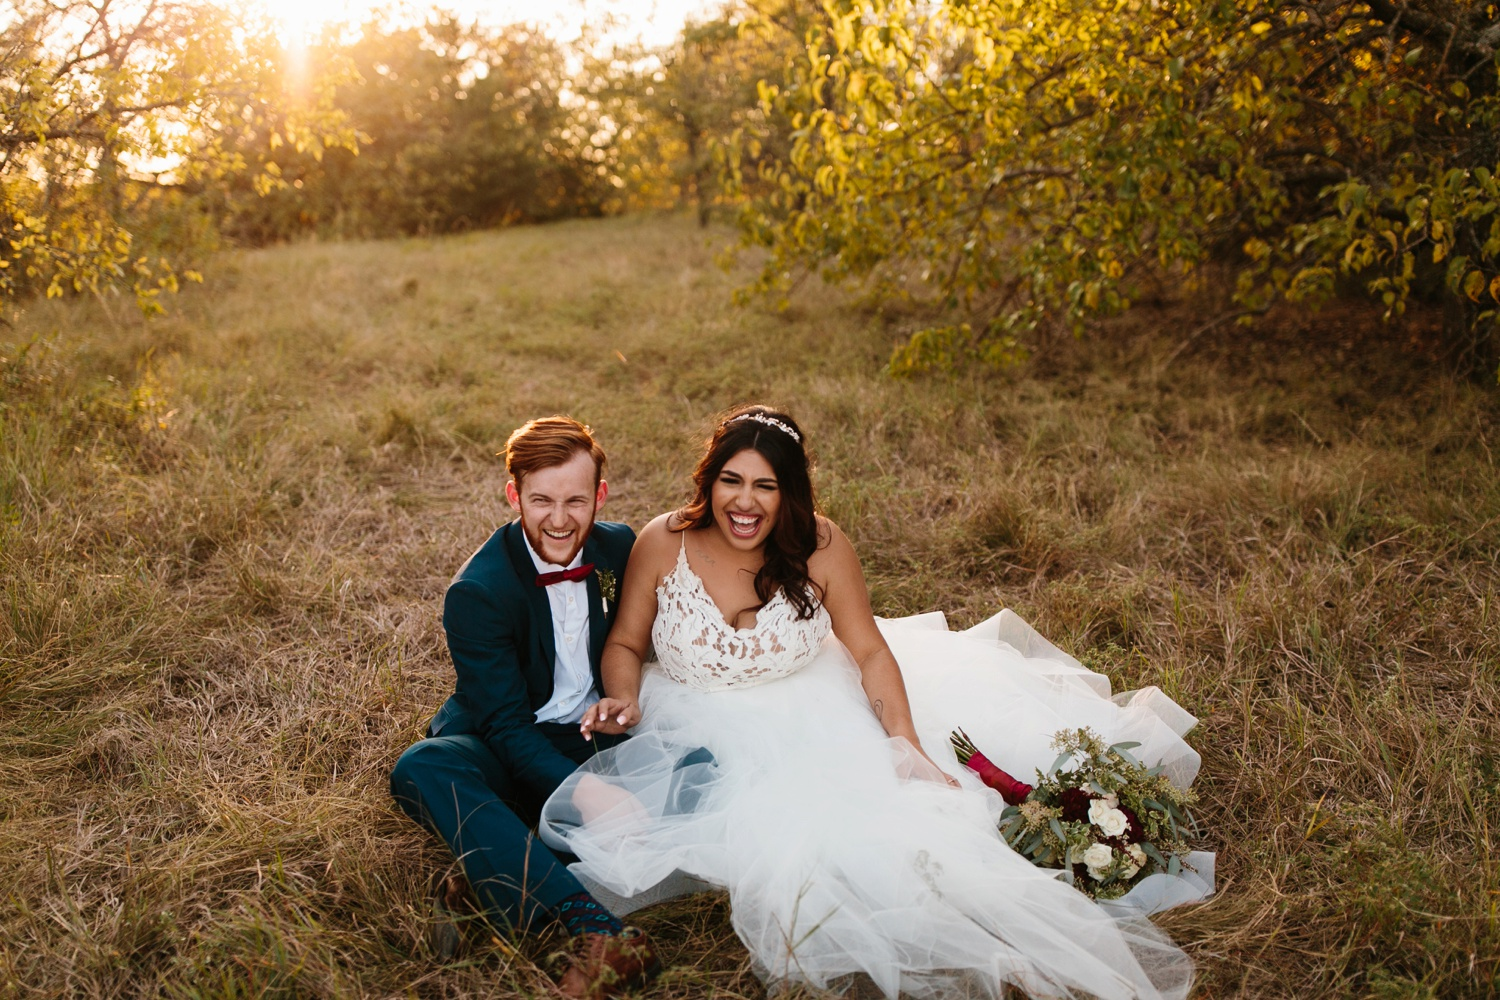 Grant + Lysette | a vibrant, deep burgundy and navy, and mixed metals wedding at Hidden Pines Chapel by North Texas Wedding Photographer Rachel Meagan Photography 233